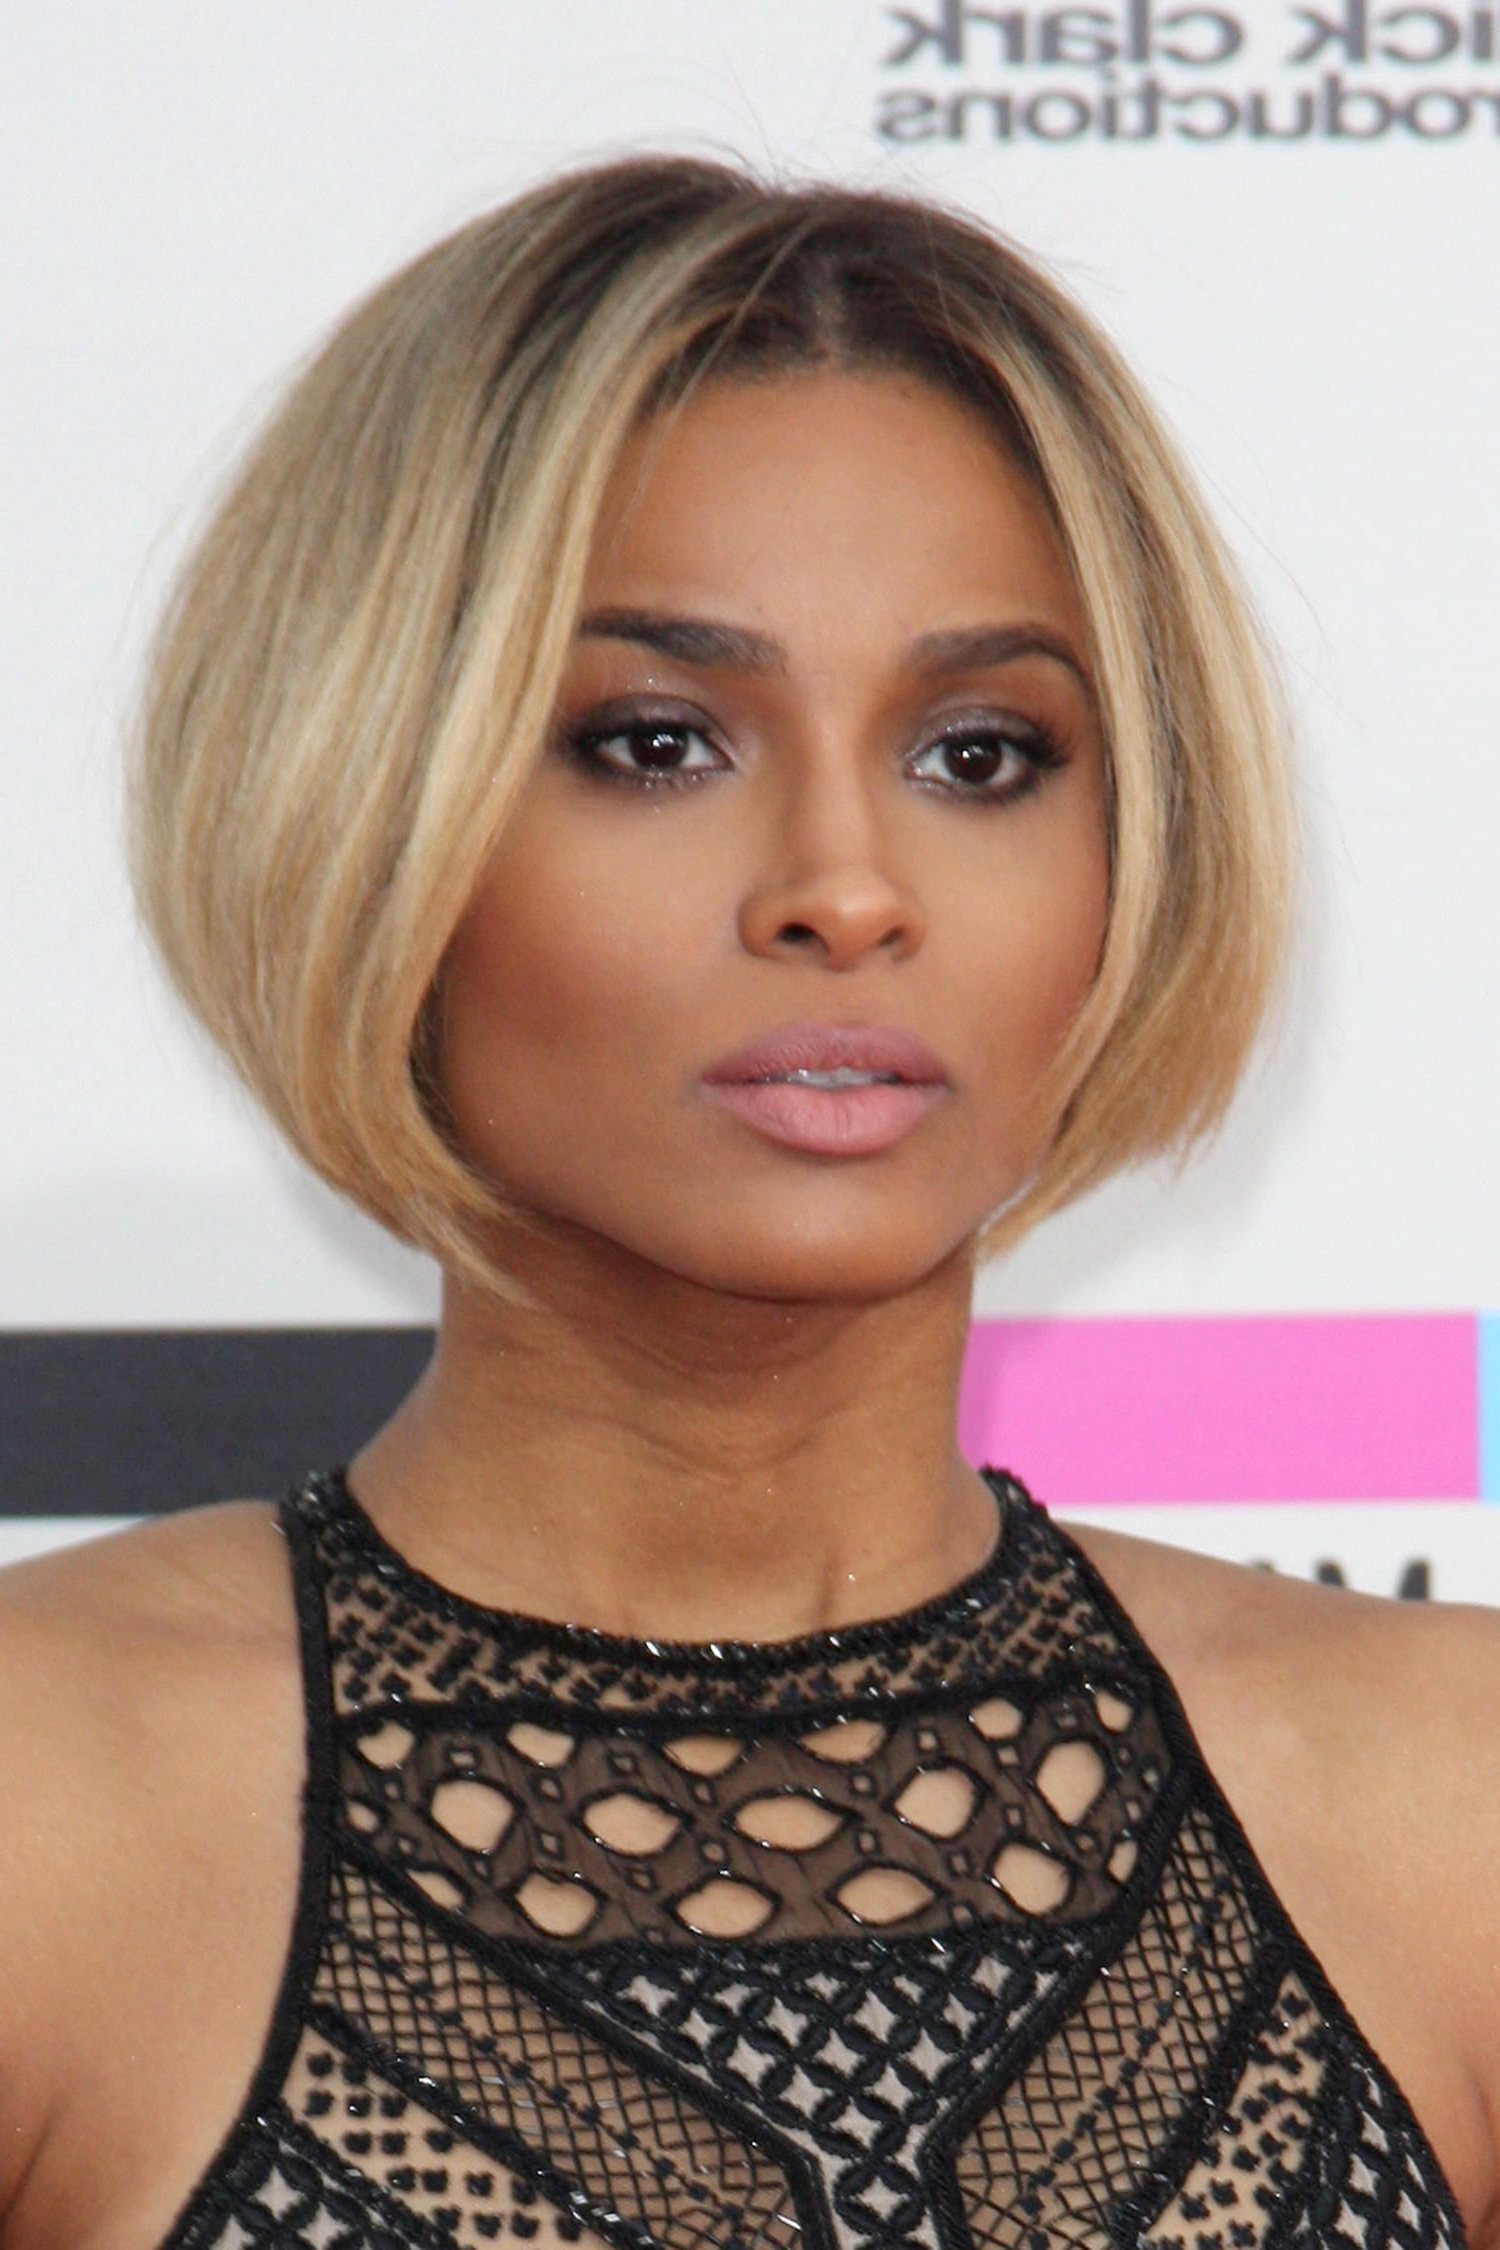 Pin On Hair With Regard To 2019 Chin Length Bob Hairstyles With Middle Part (Gallery 2 of 20)